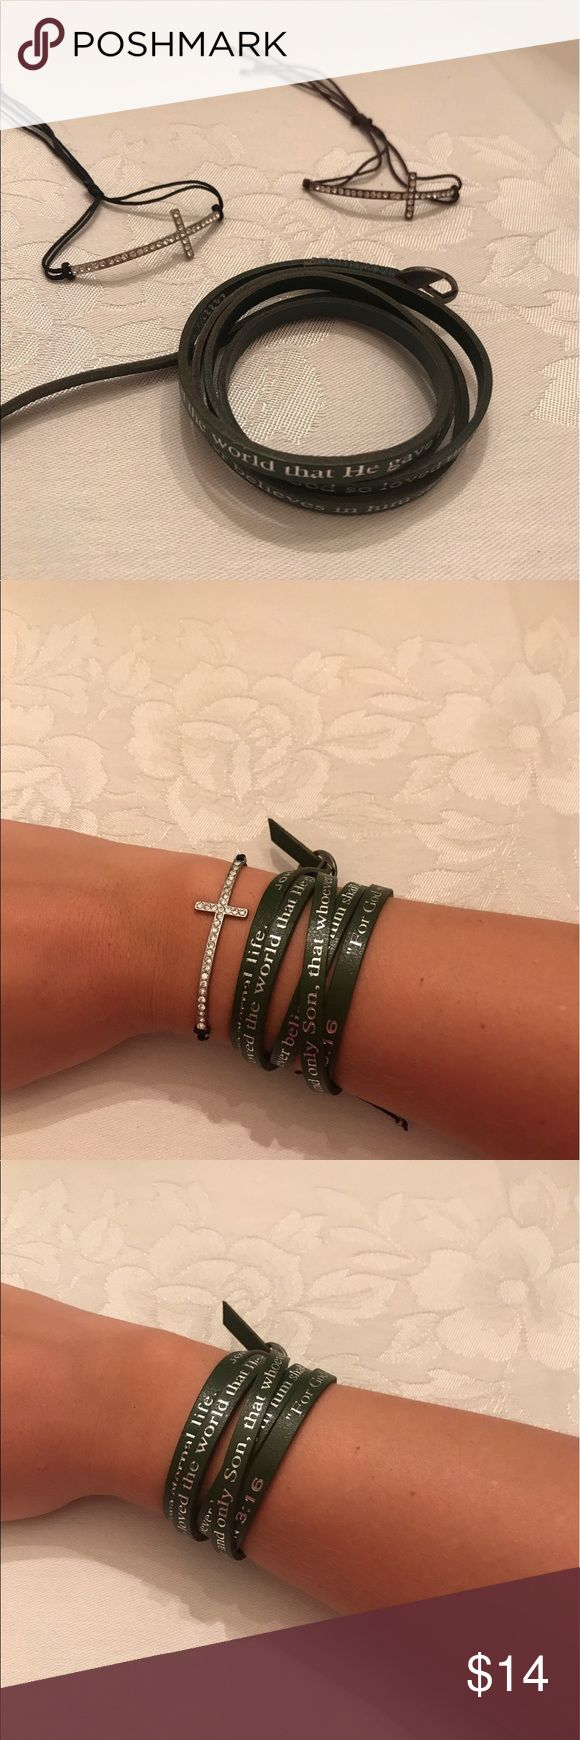 Bracelet Bundle Three Bracelets: 1) bronze cross adjustable bracelet with brown string 2) silver cross adjustable bracelet with black string 3) John 3:16 verse wrap bracelet in olive green. - All Bracelets are in great shape! Jewelry Bracelets